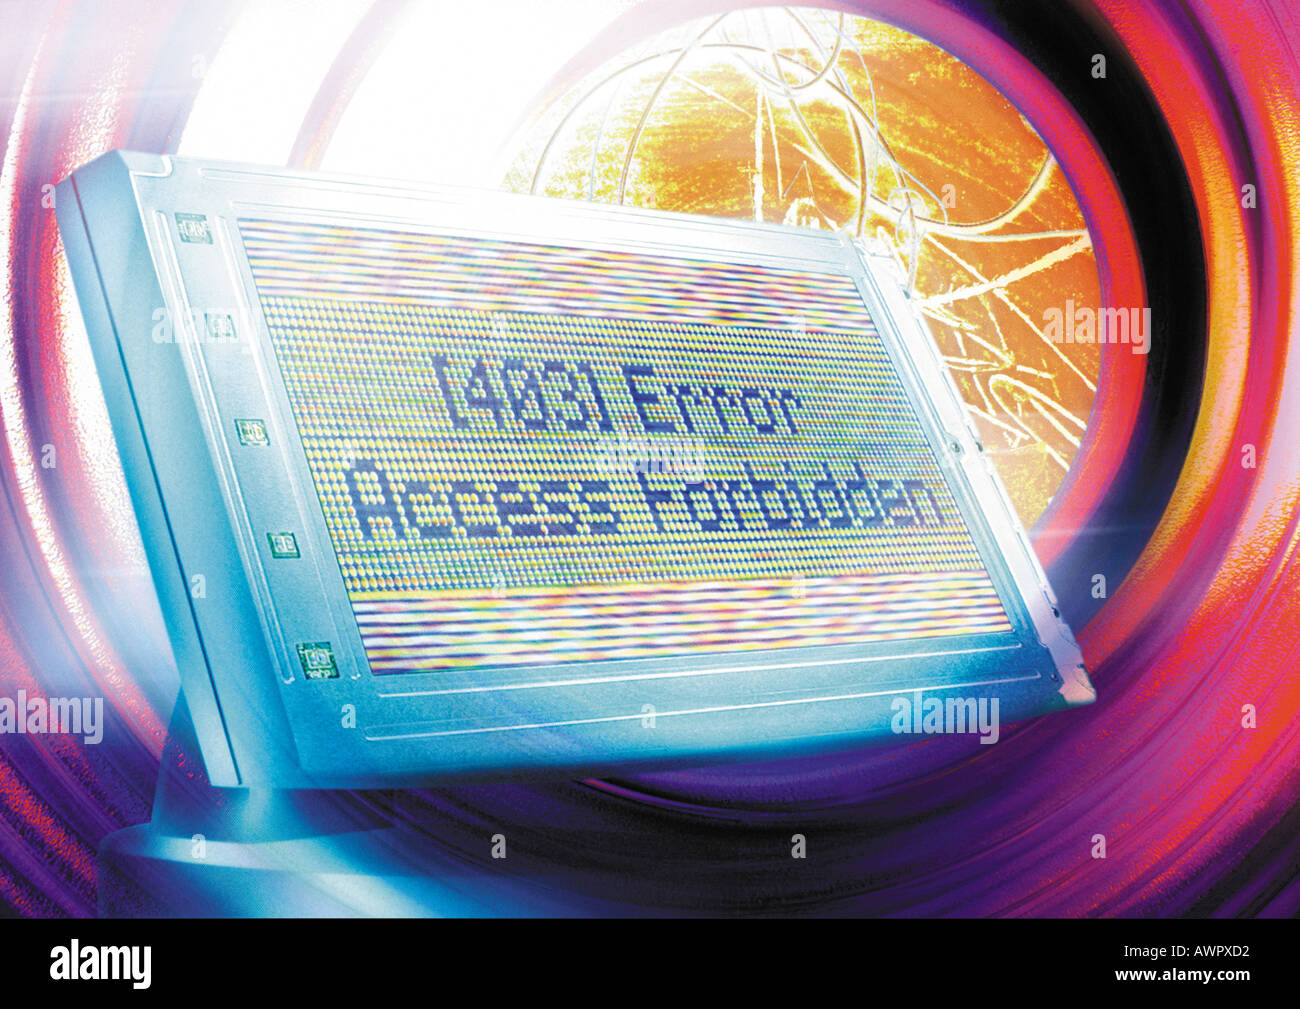 Computer monitor floating in cyberspace, 'Error' message on screen, digital composite. - Stock Image